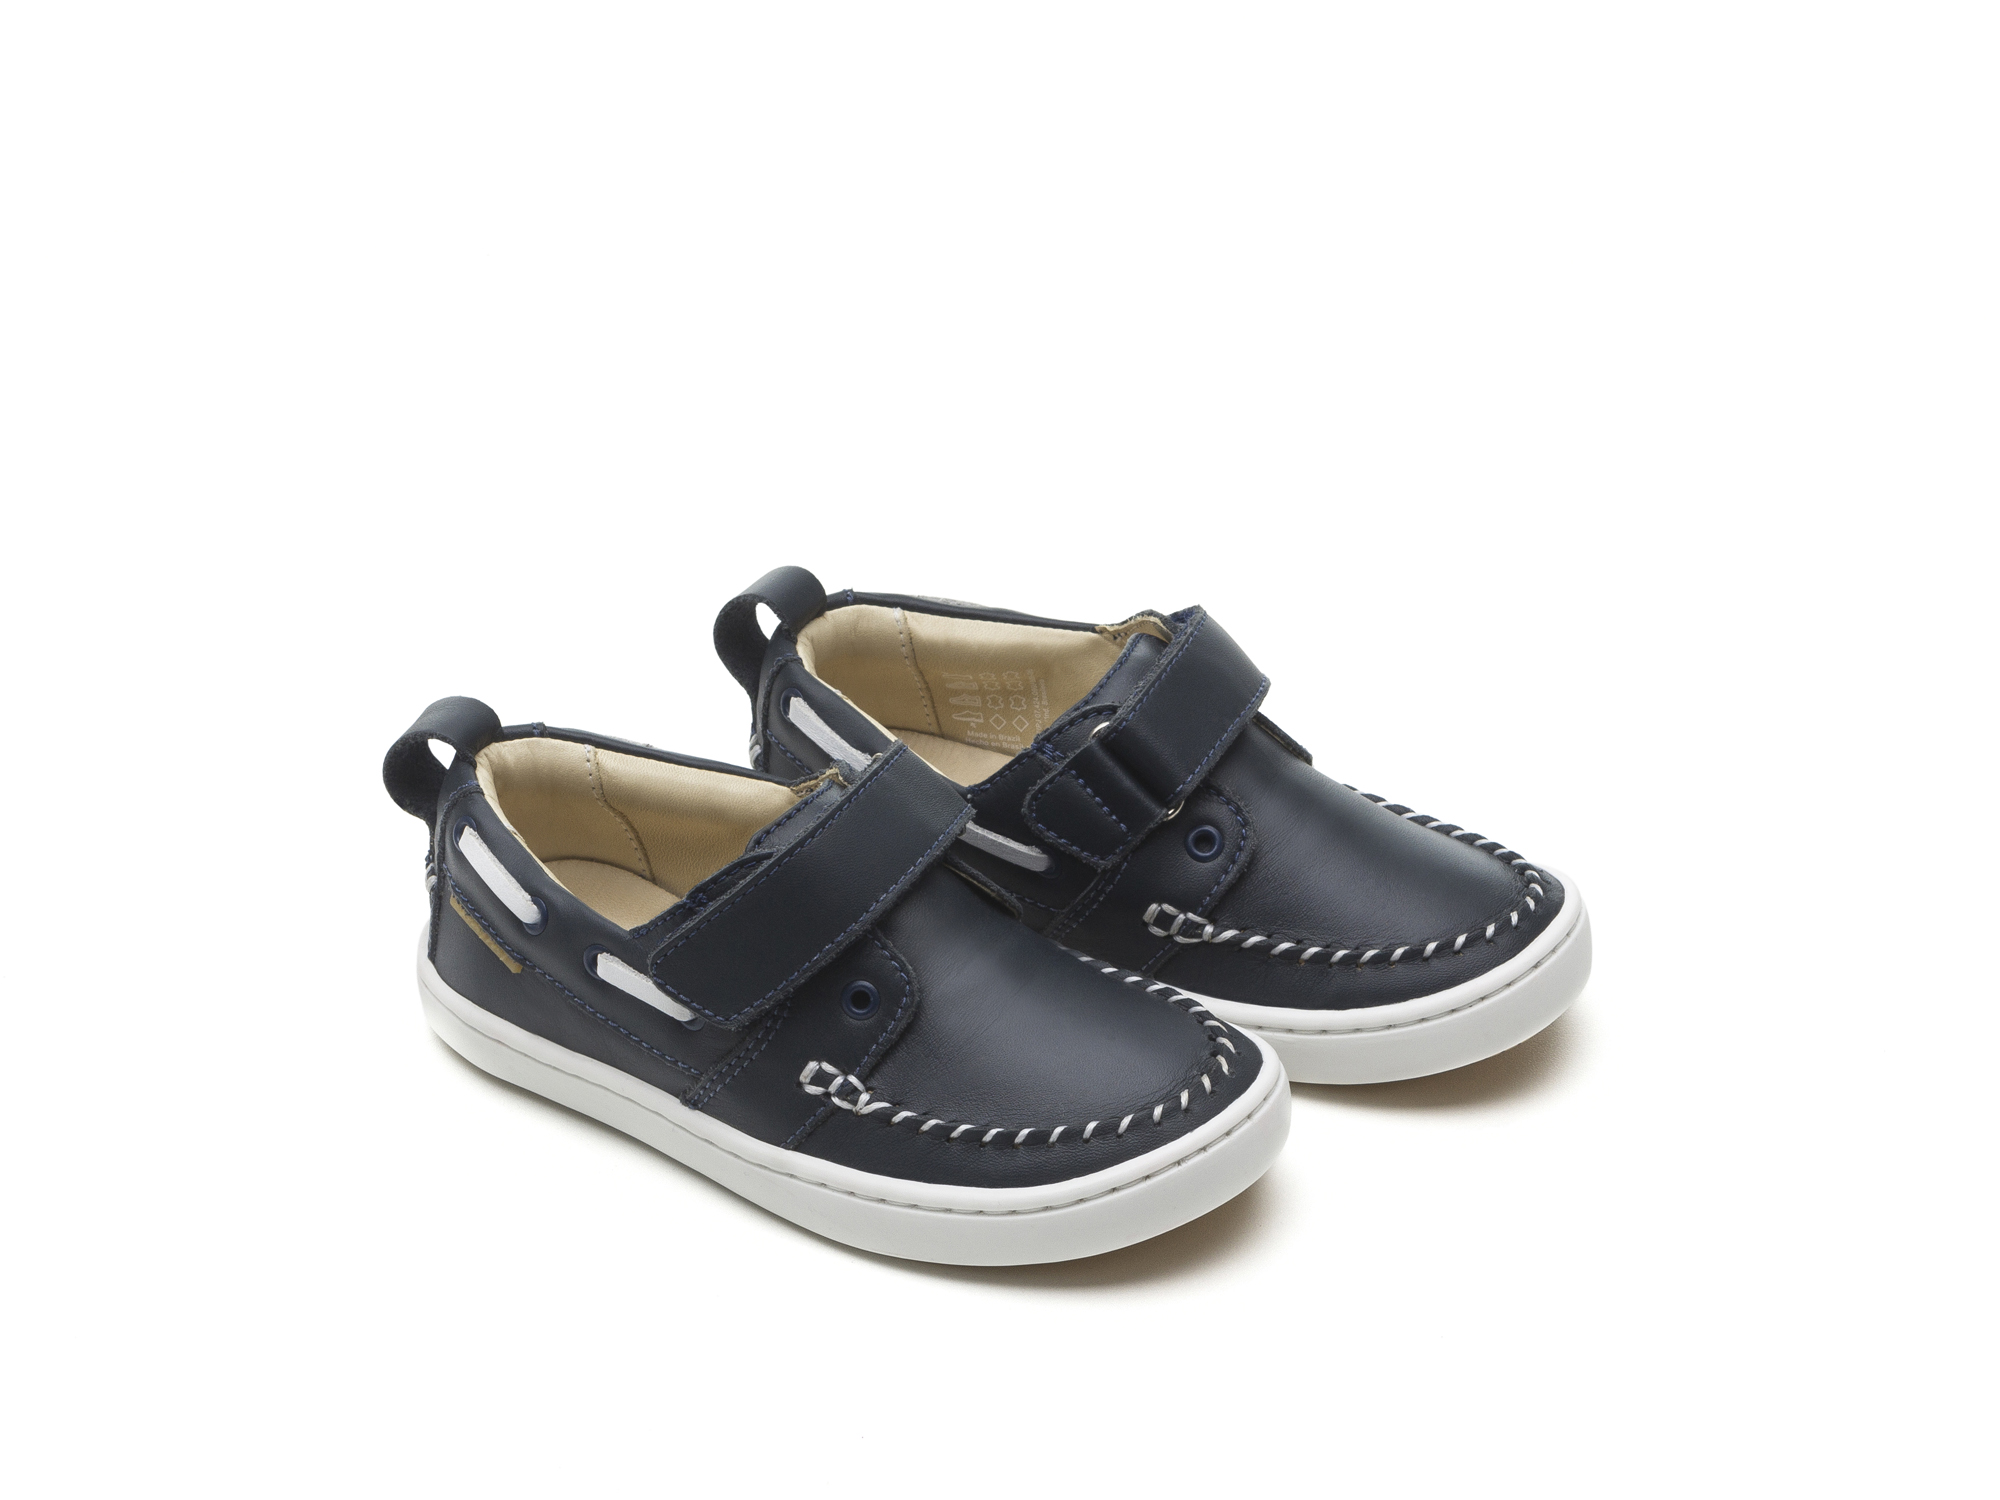 Tênis Little Snap Navy/ White Toddler 2 à 4 anos - 0